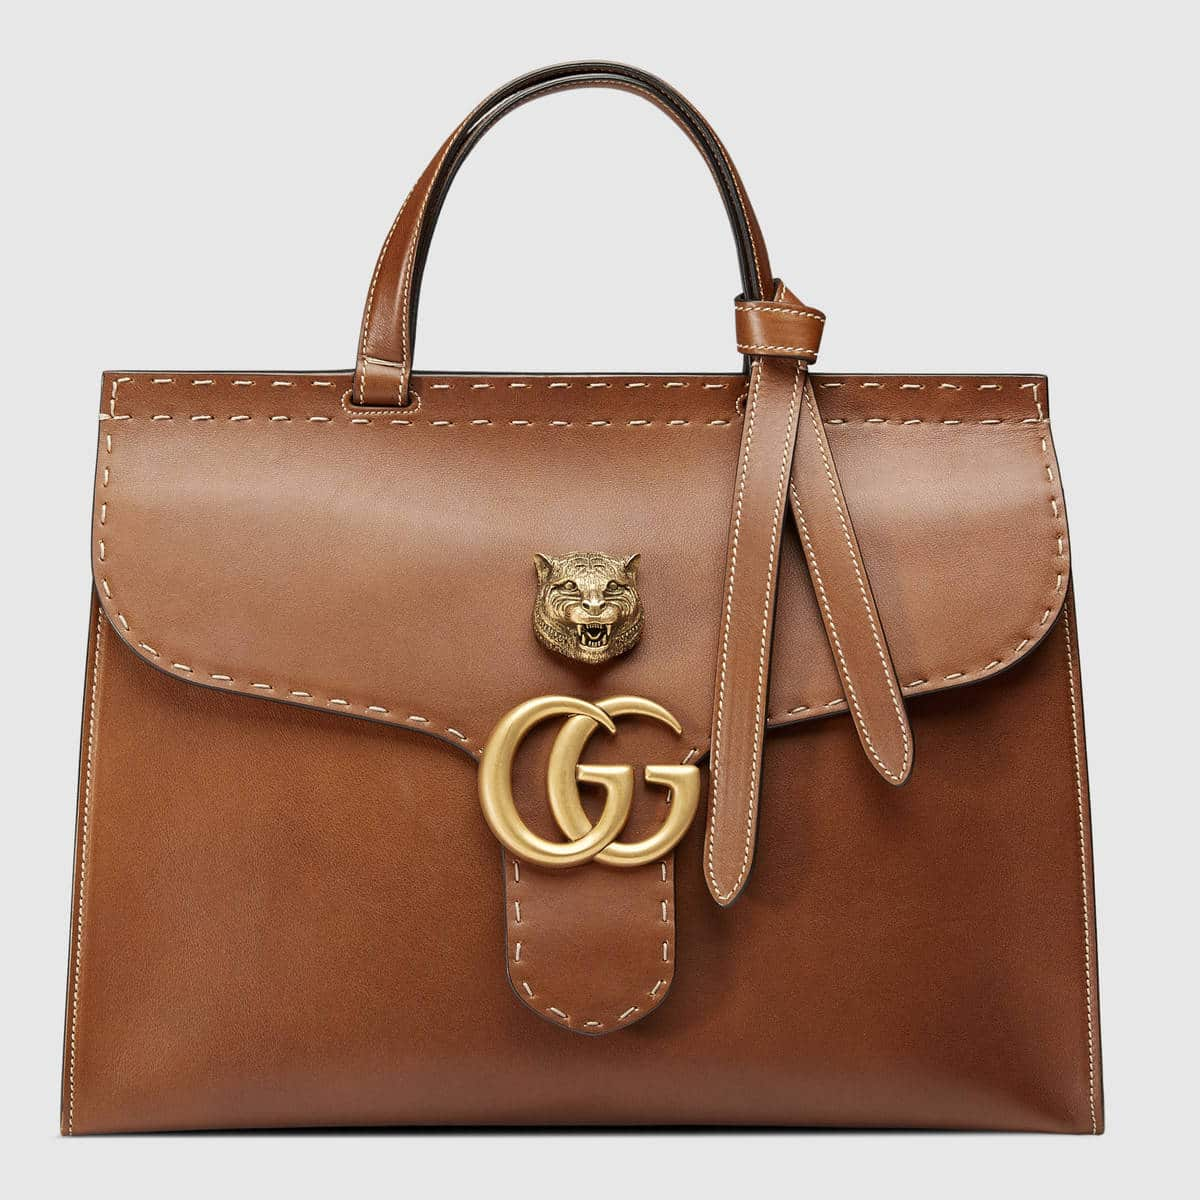 Gucci GG Marmont Bag Reference Guide | Spotted Fashion